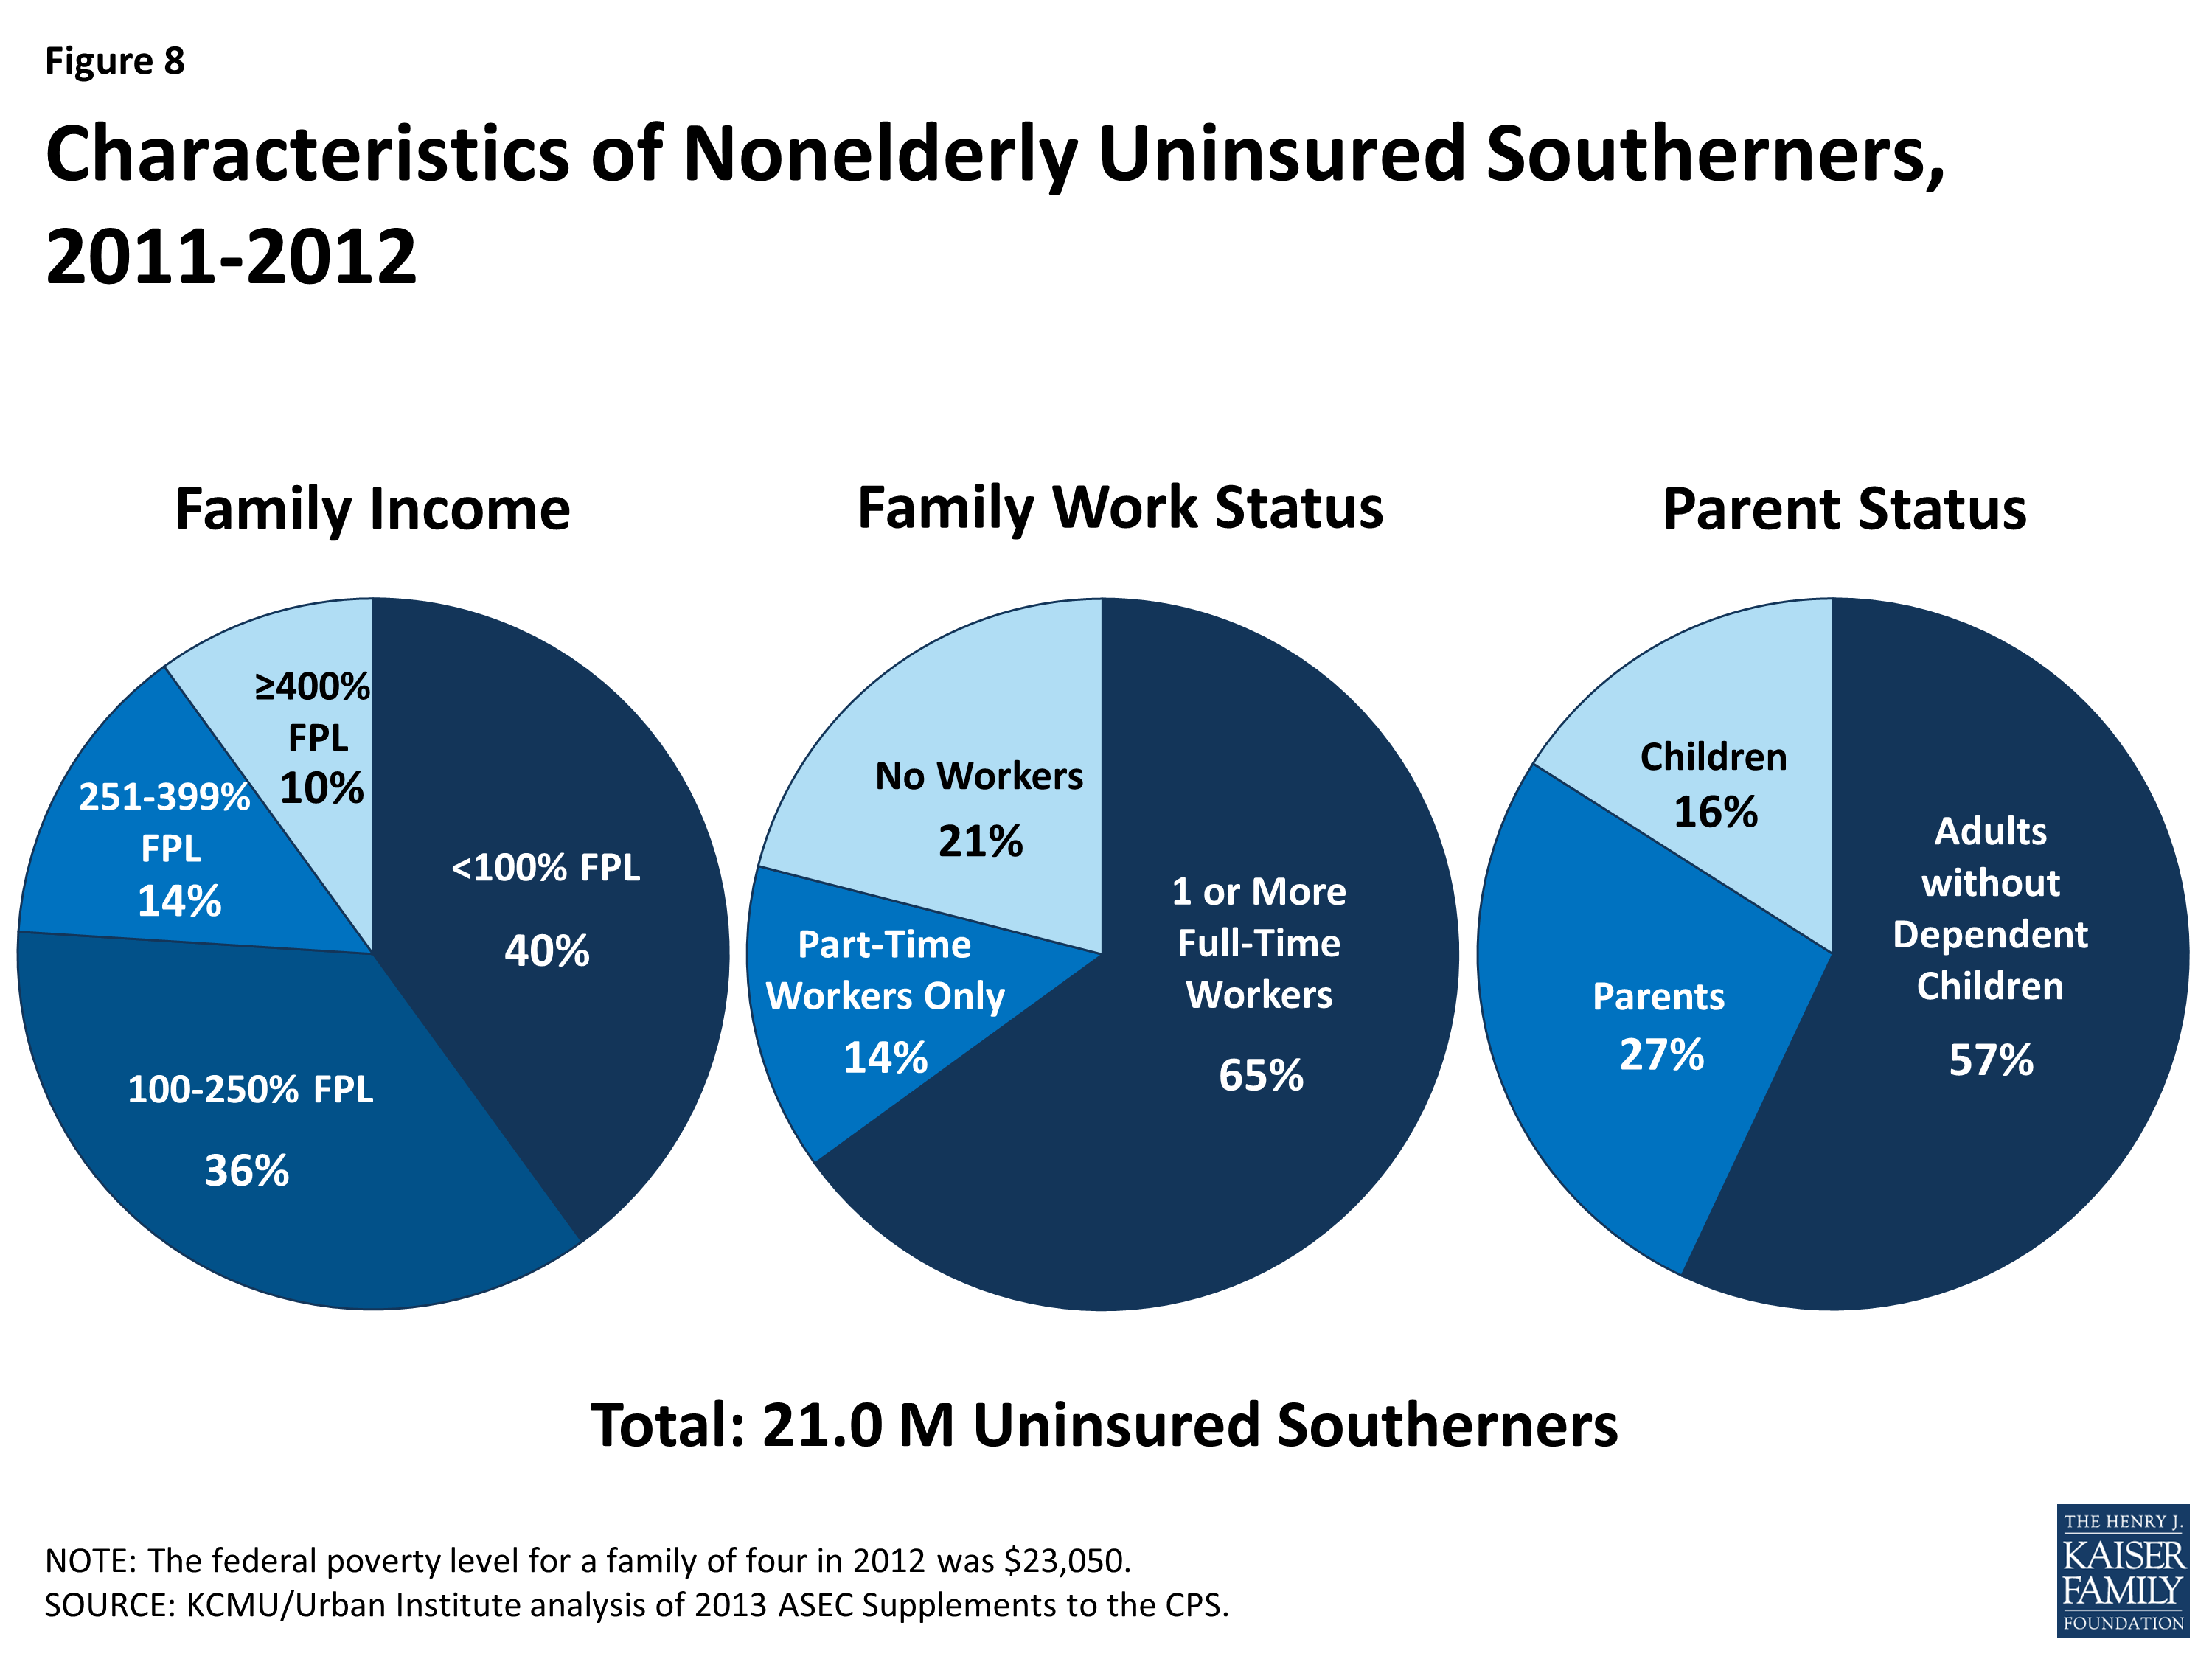 Health Coverage And Care In The South In 2014 And Beyond Profile